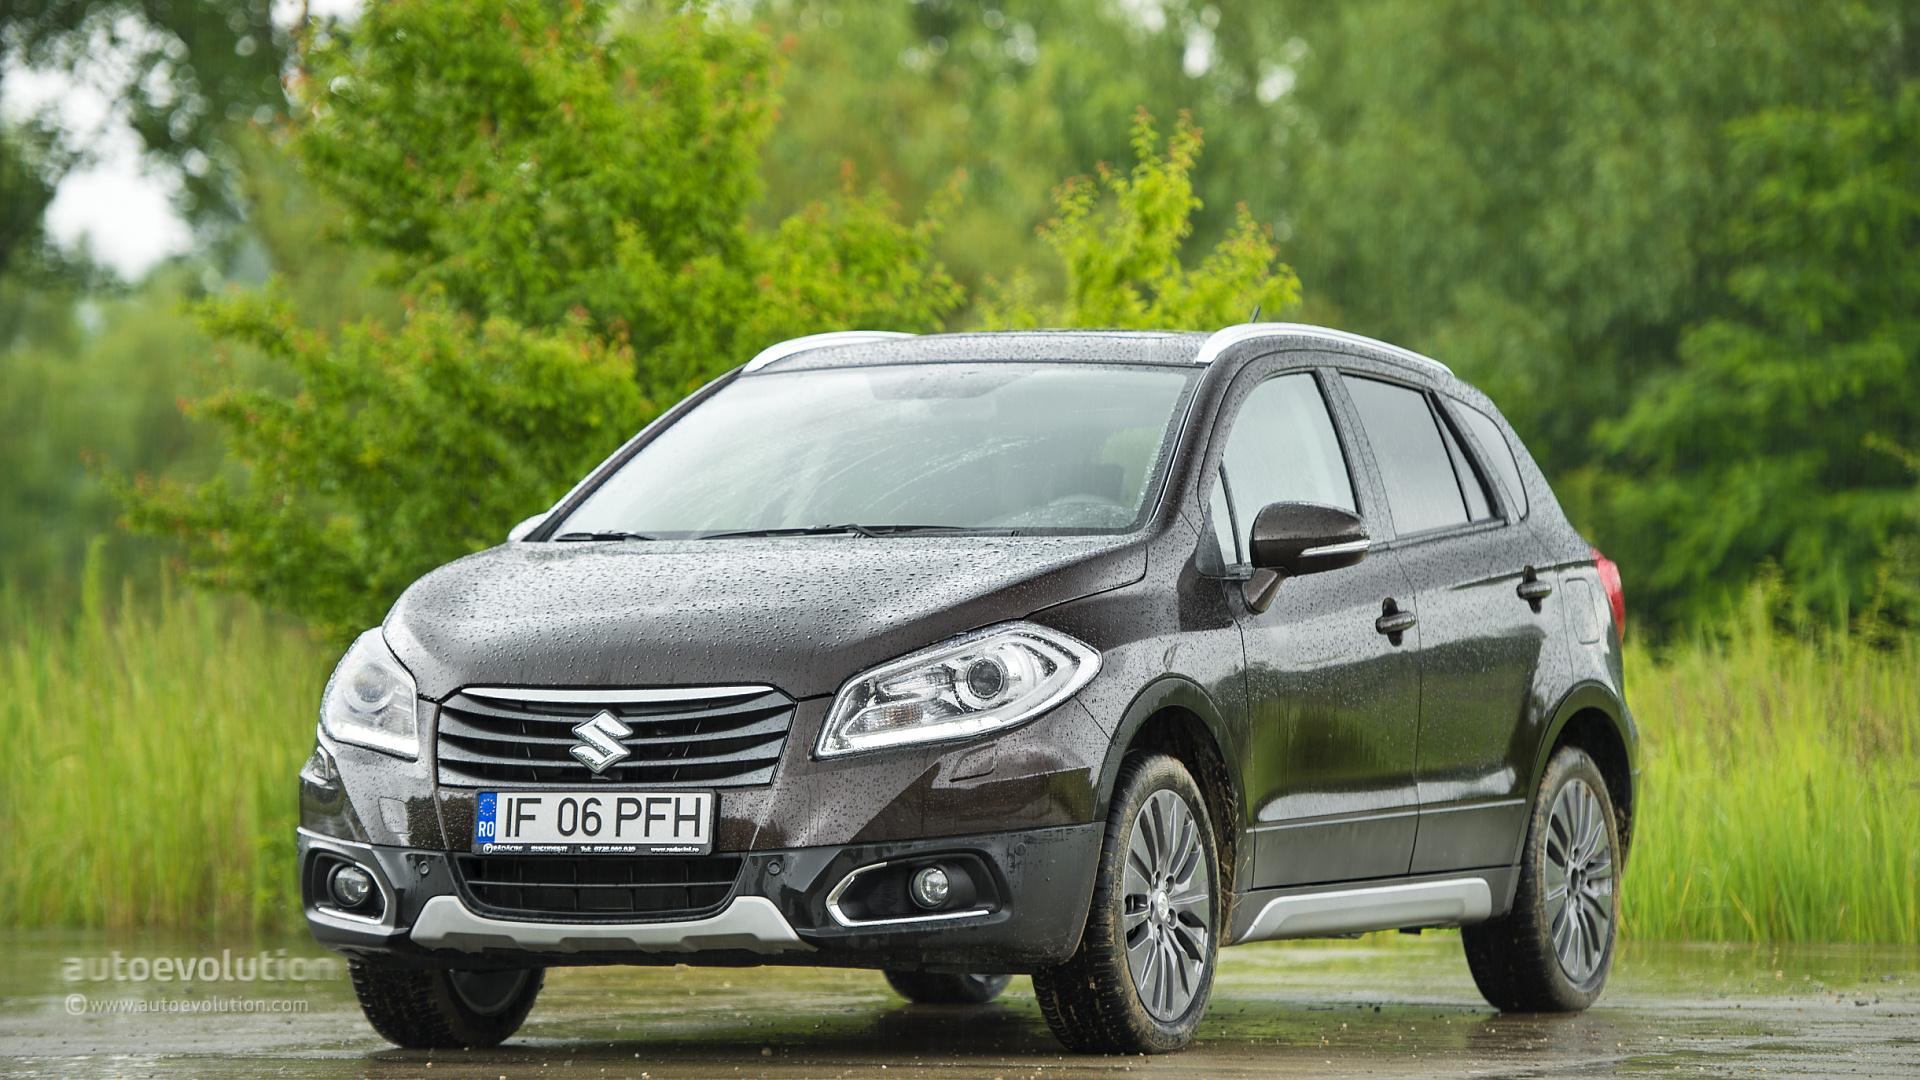 suzuki sx4 s cross hd wallpapers autoevolution. Black Bedroom Furniture Sets. Home Design Ideas